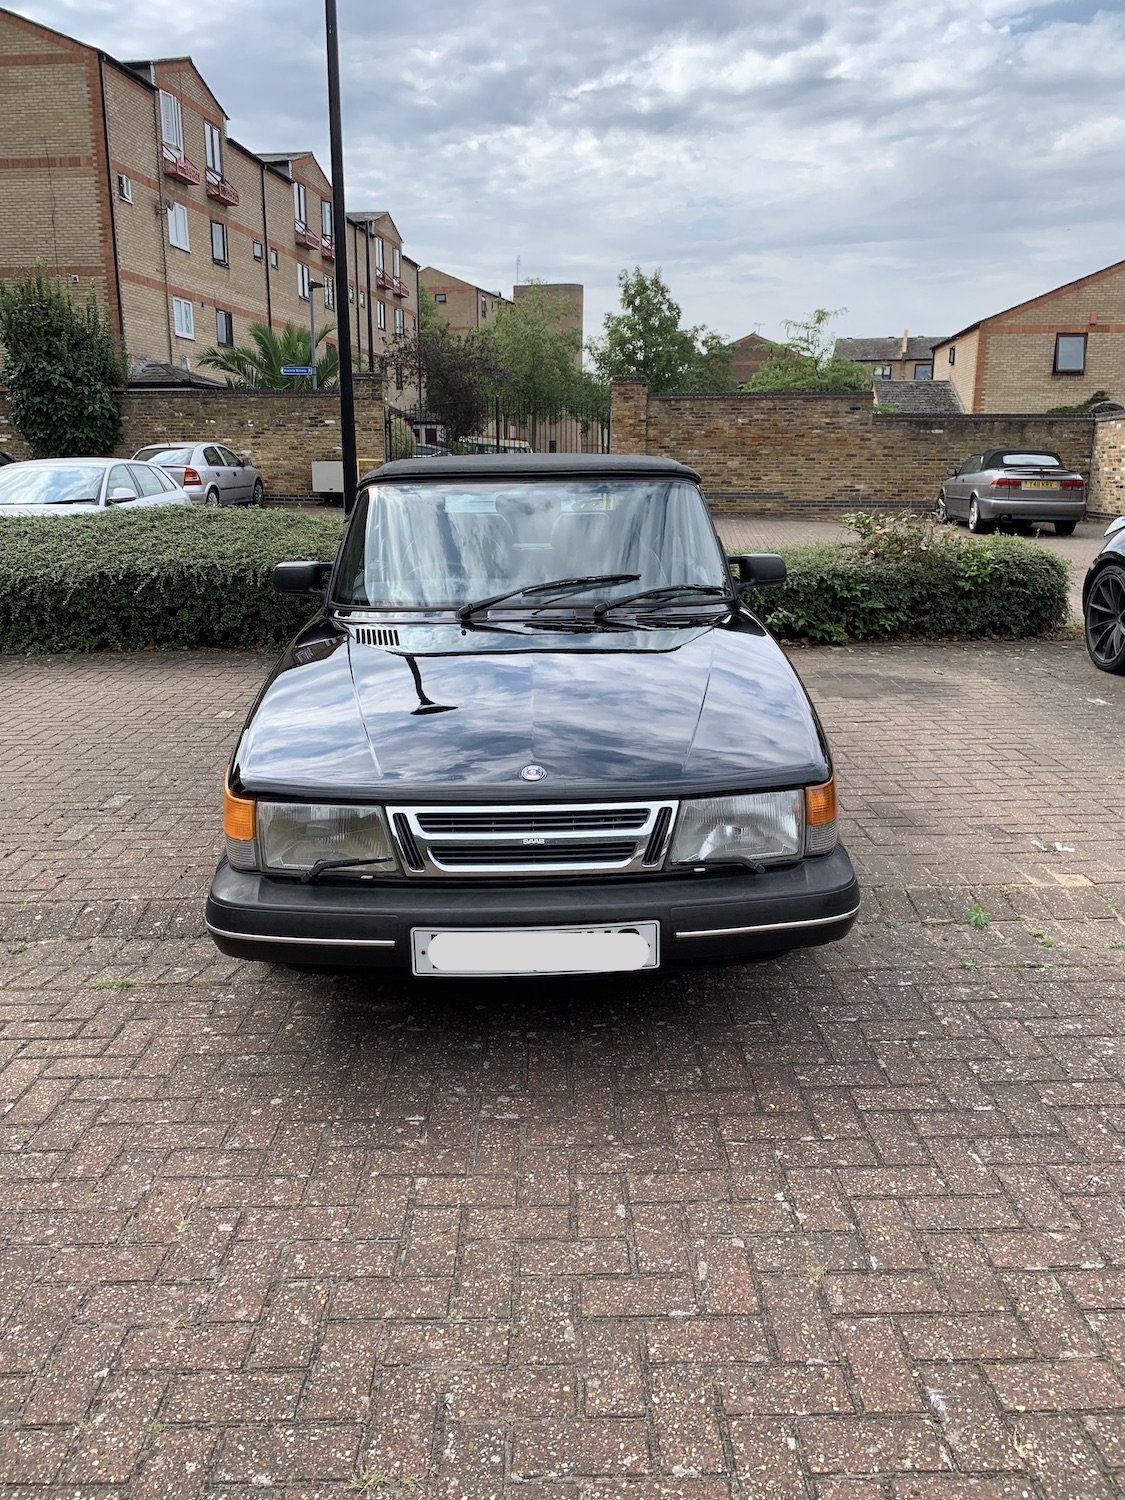 1992 Classic Saab 900i convertible in superb condition For Sale (picture 3 of 6)